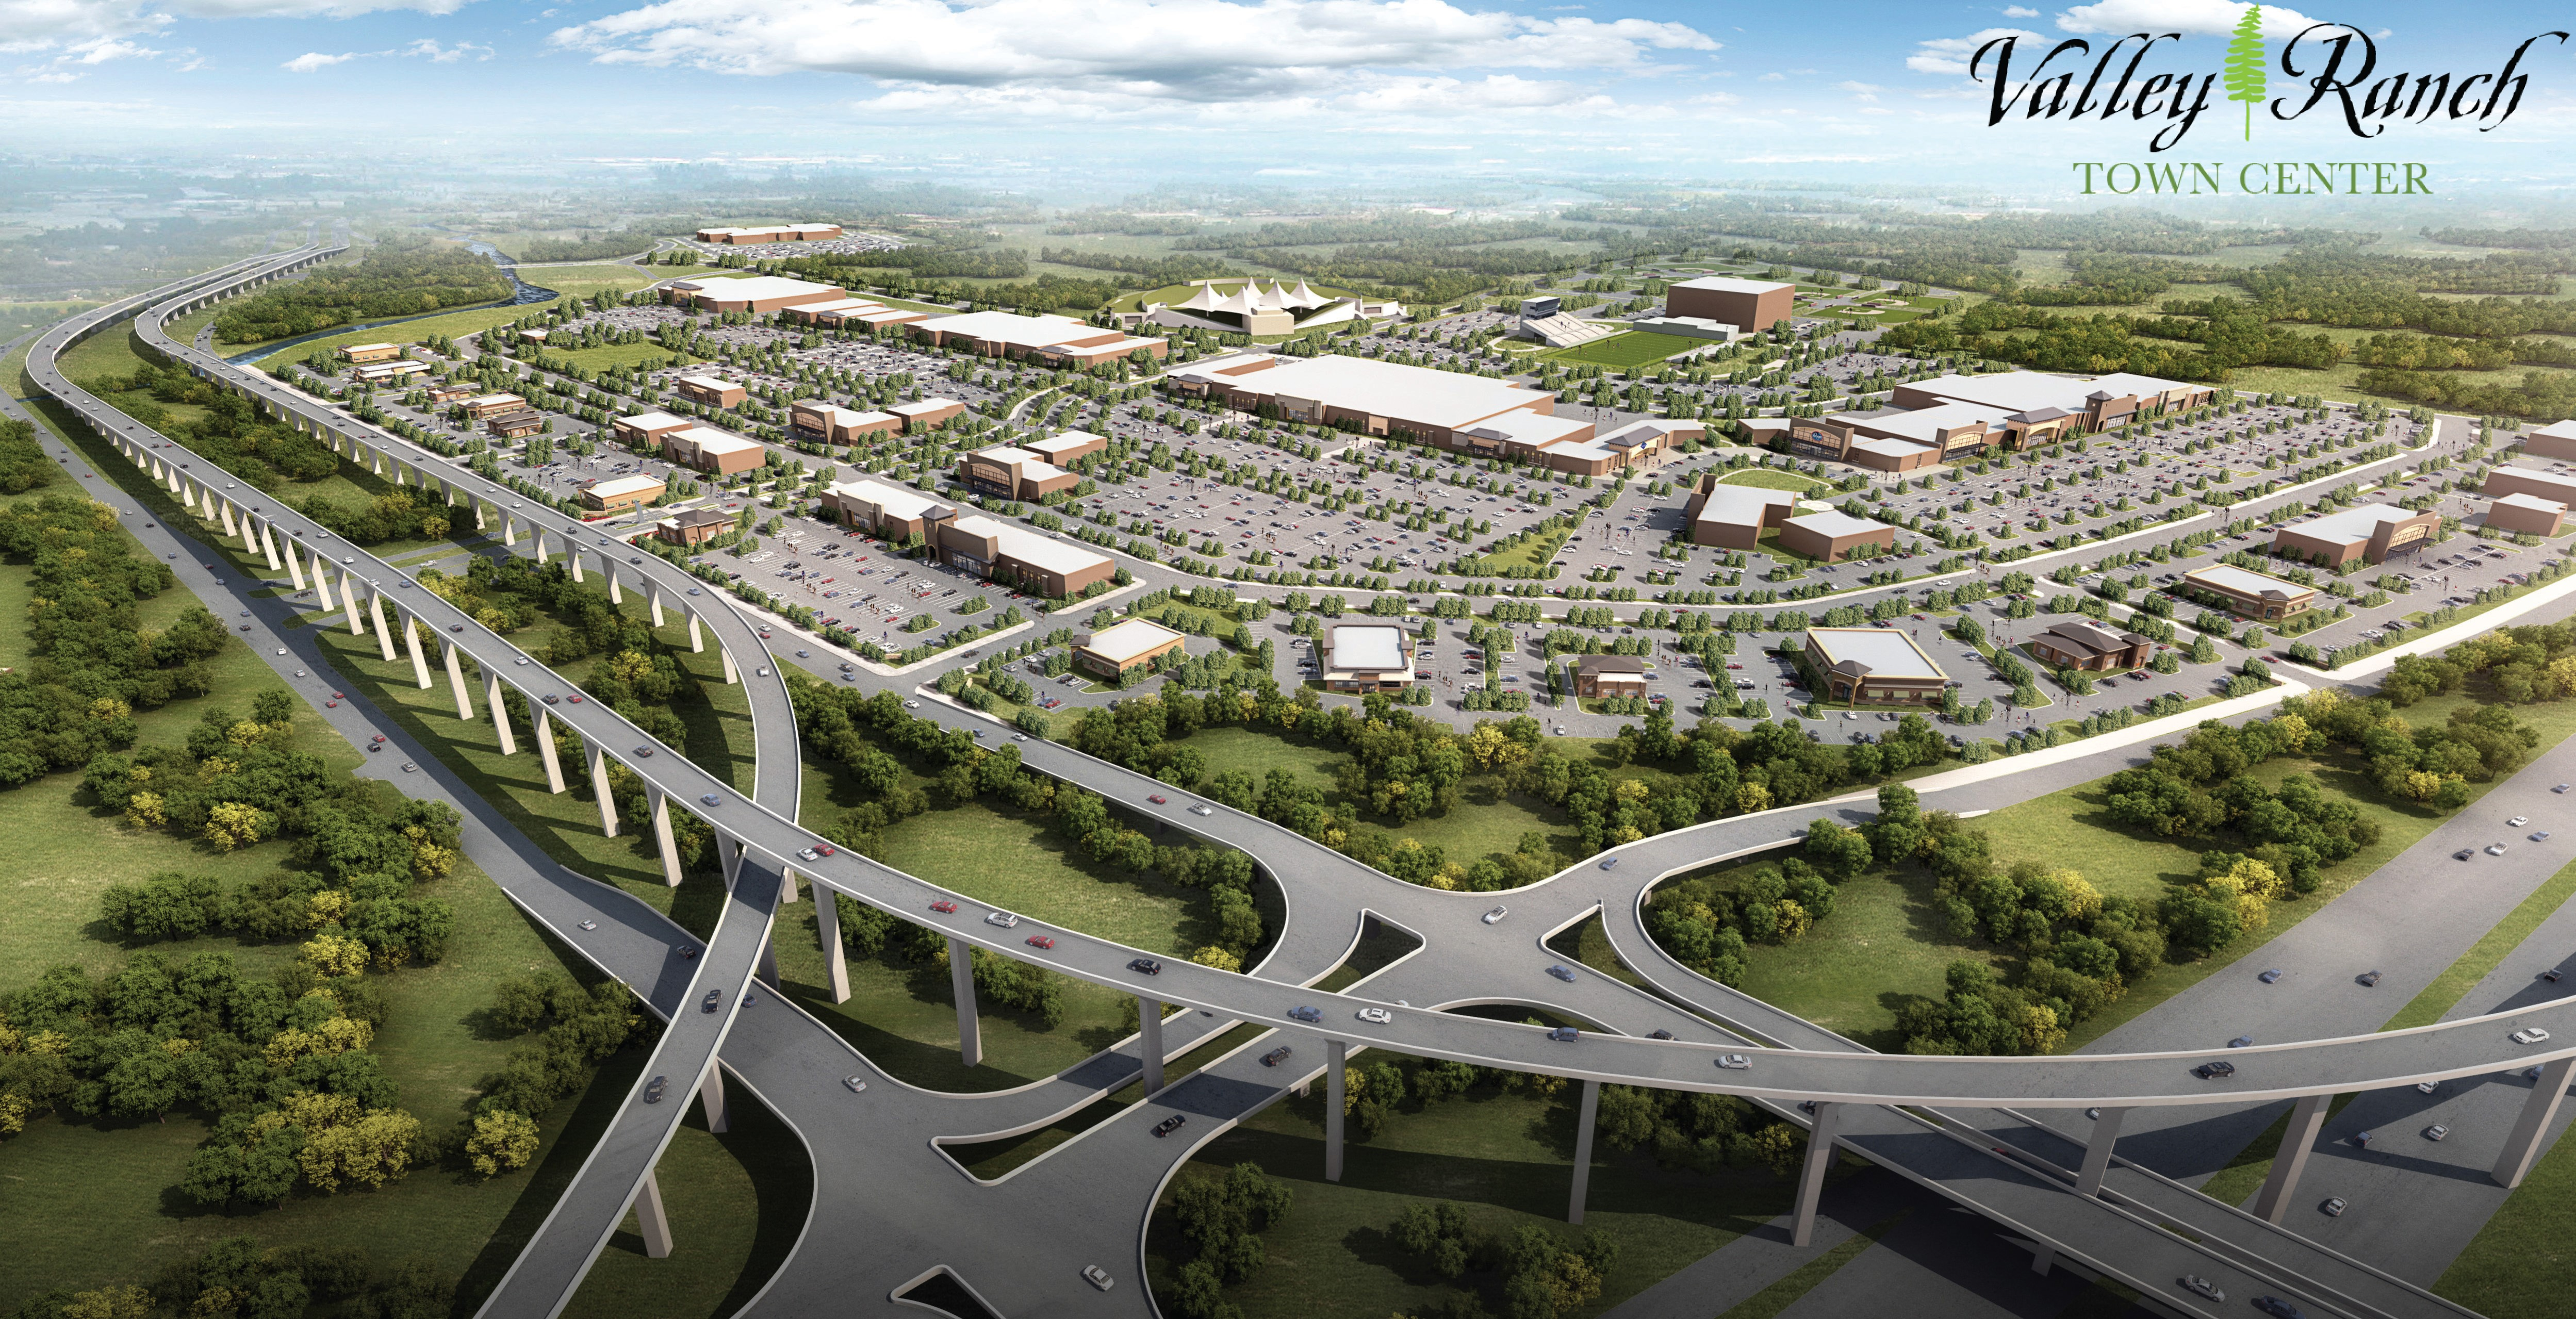 Valley_Ranch_Town_Center_Rendering